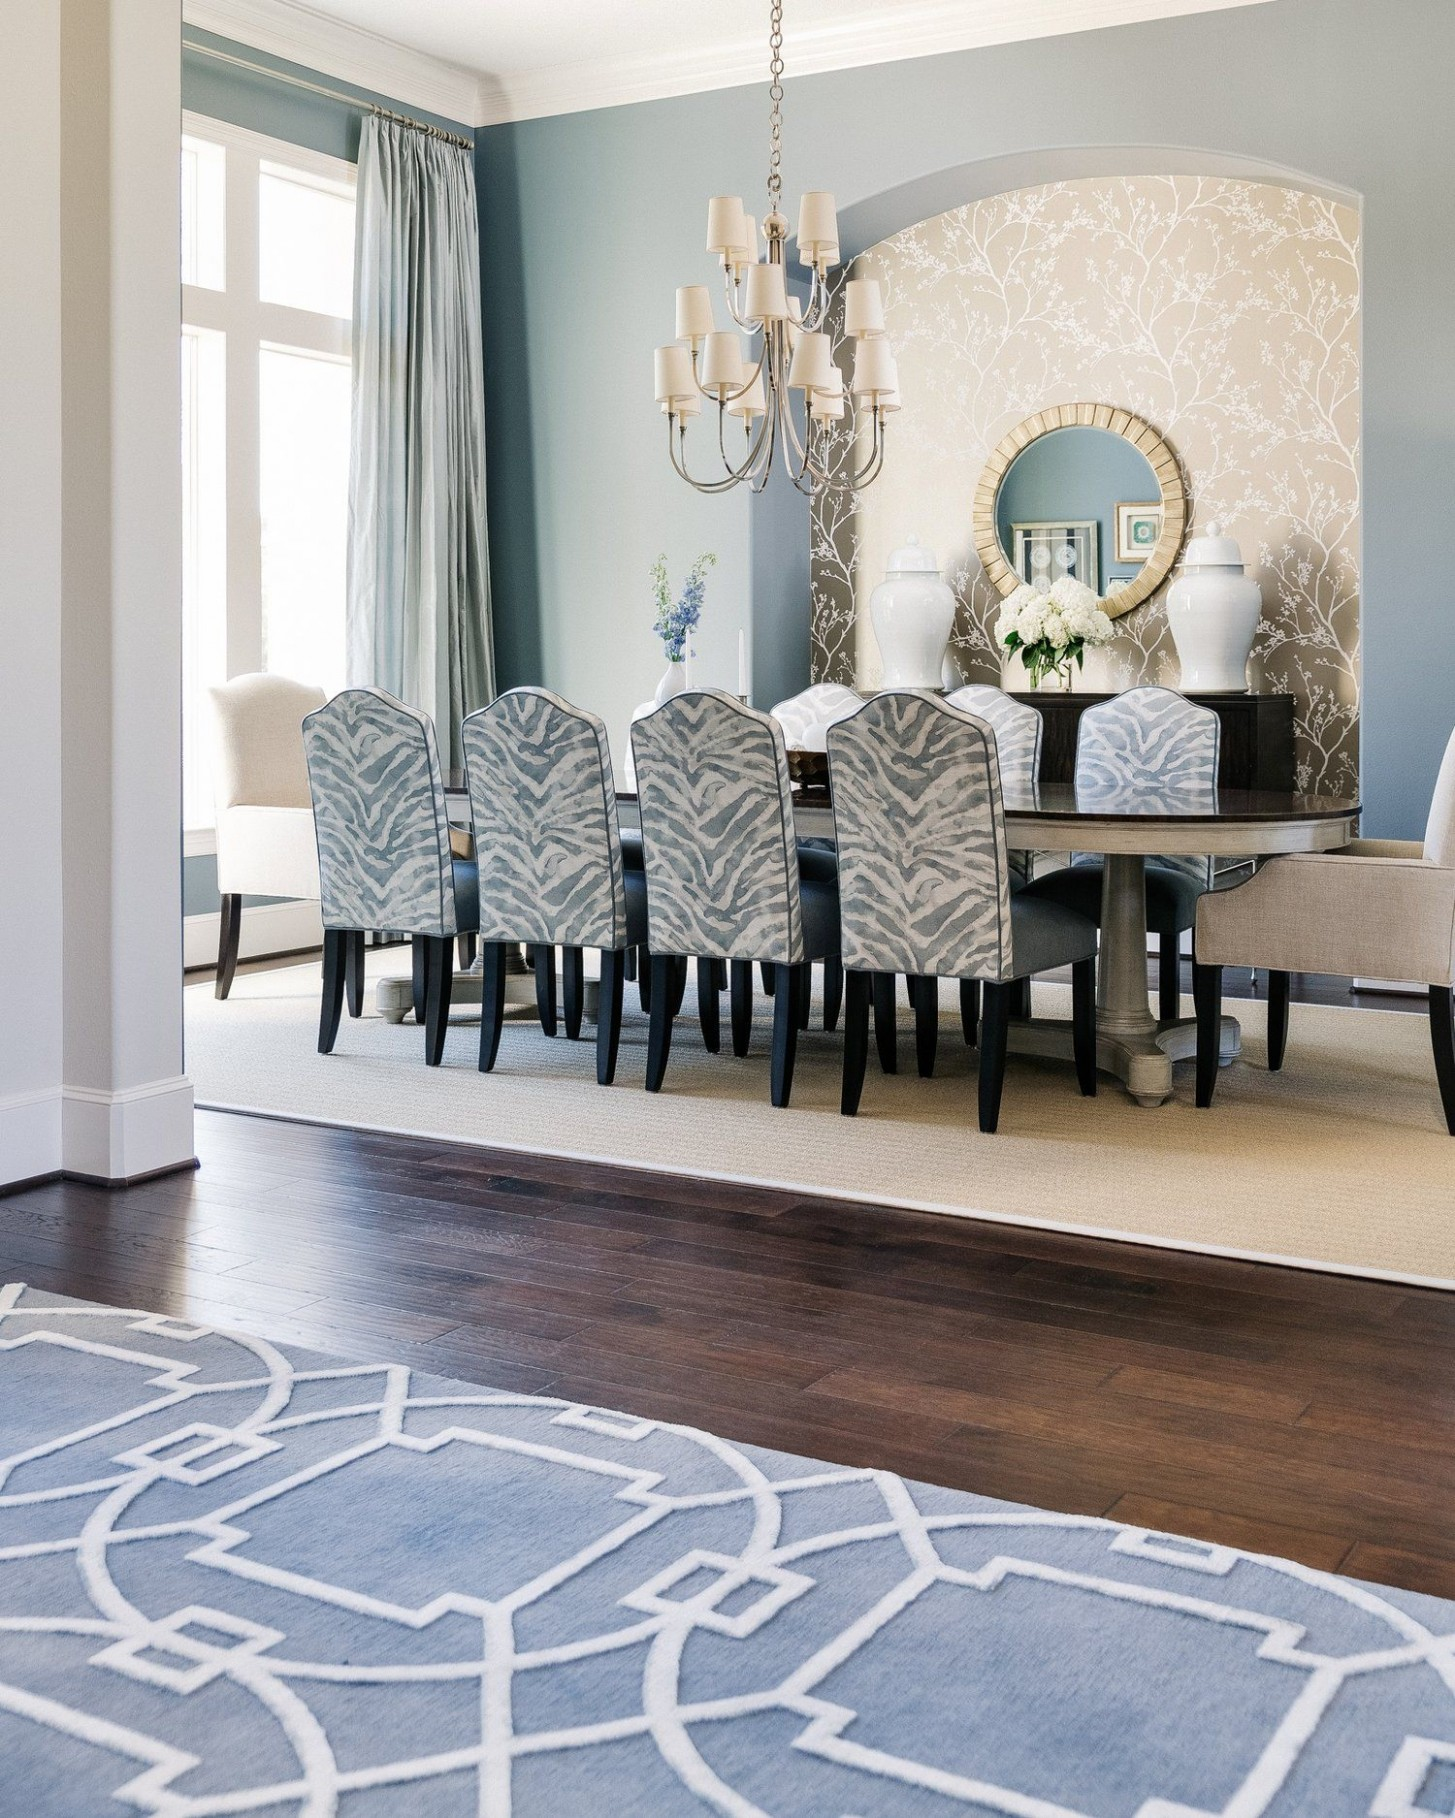 PROJECT REVEAL - An Elegant Dining Room With A Fresh, New Look  - Dining Room Ideas Blue